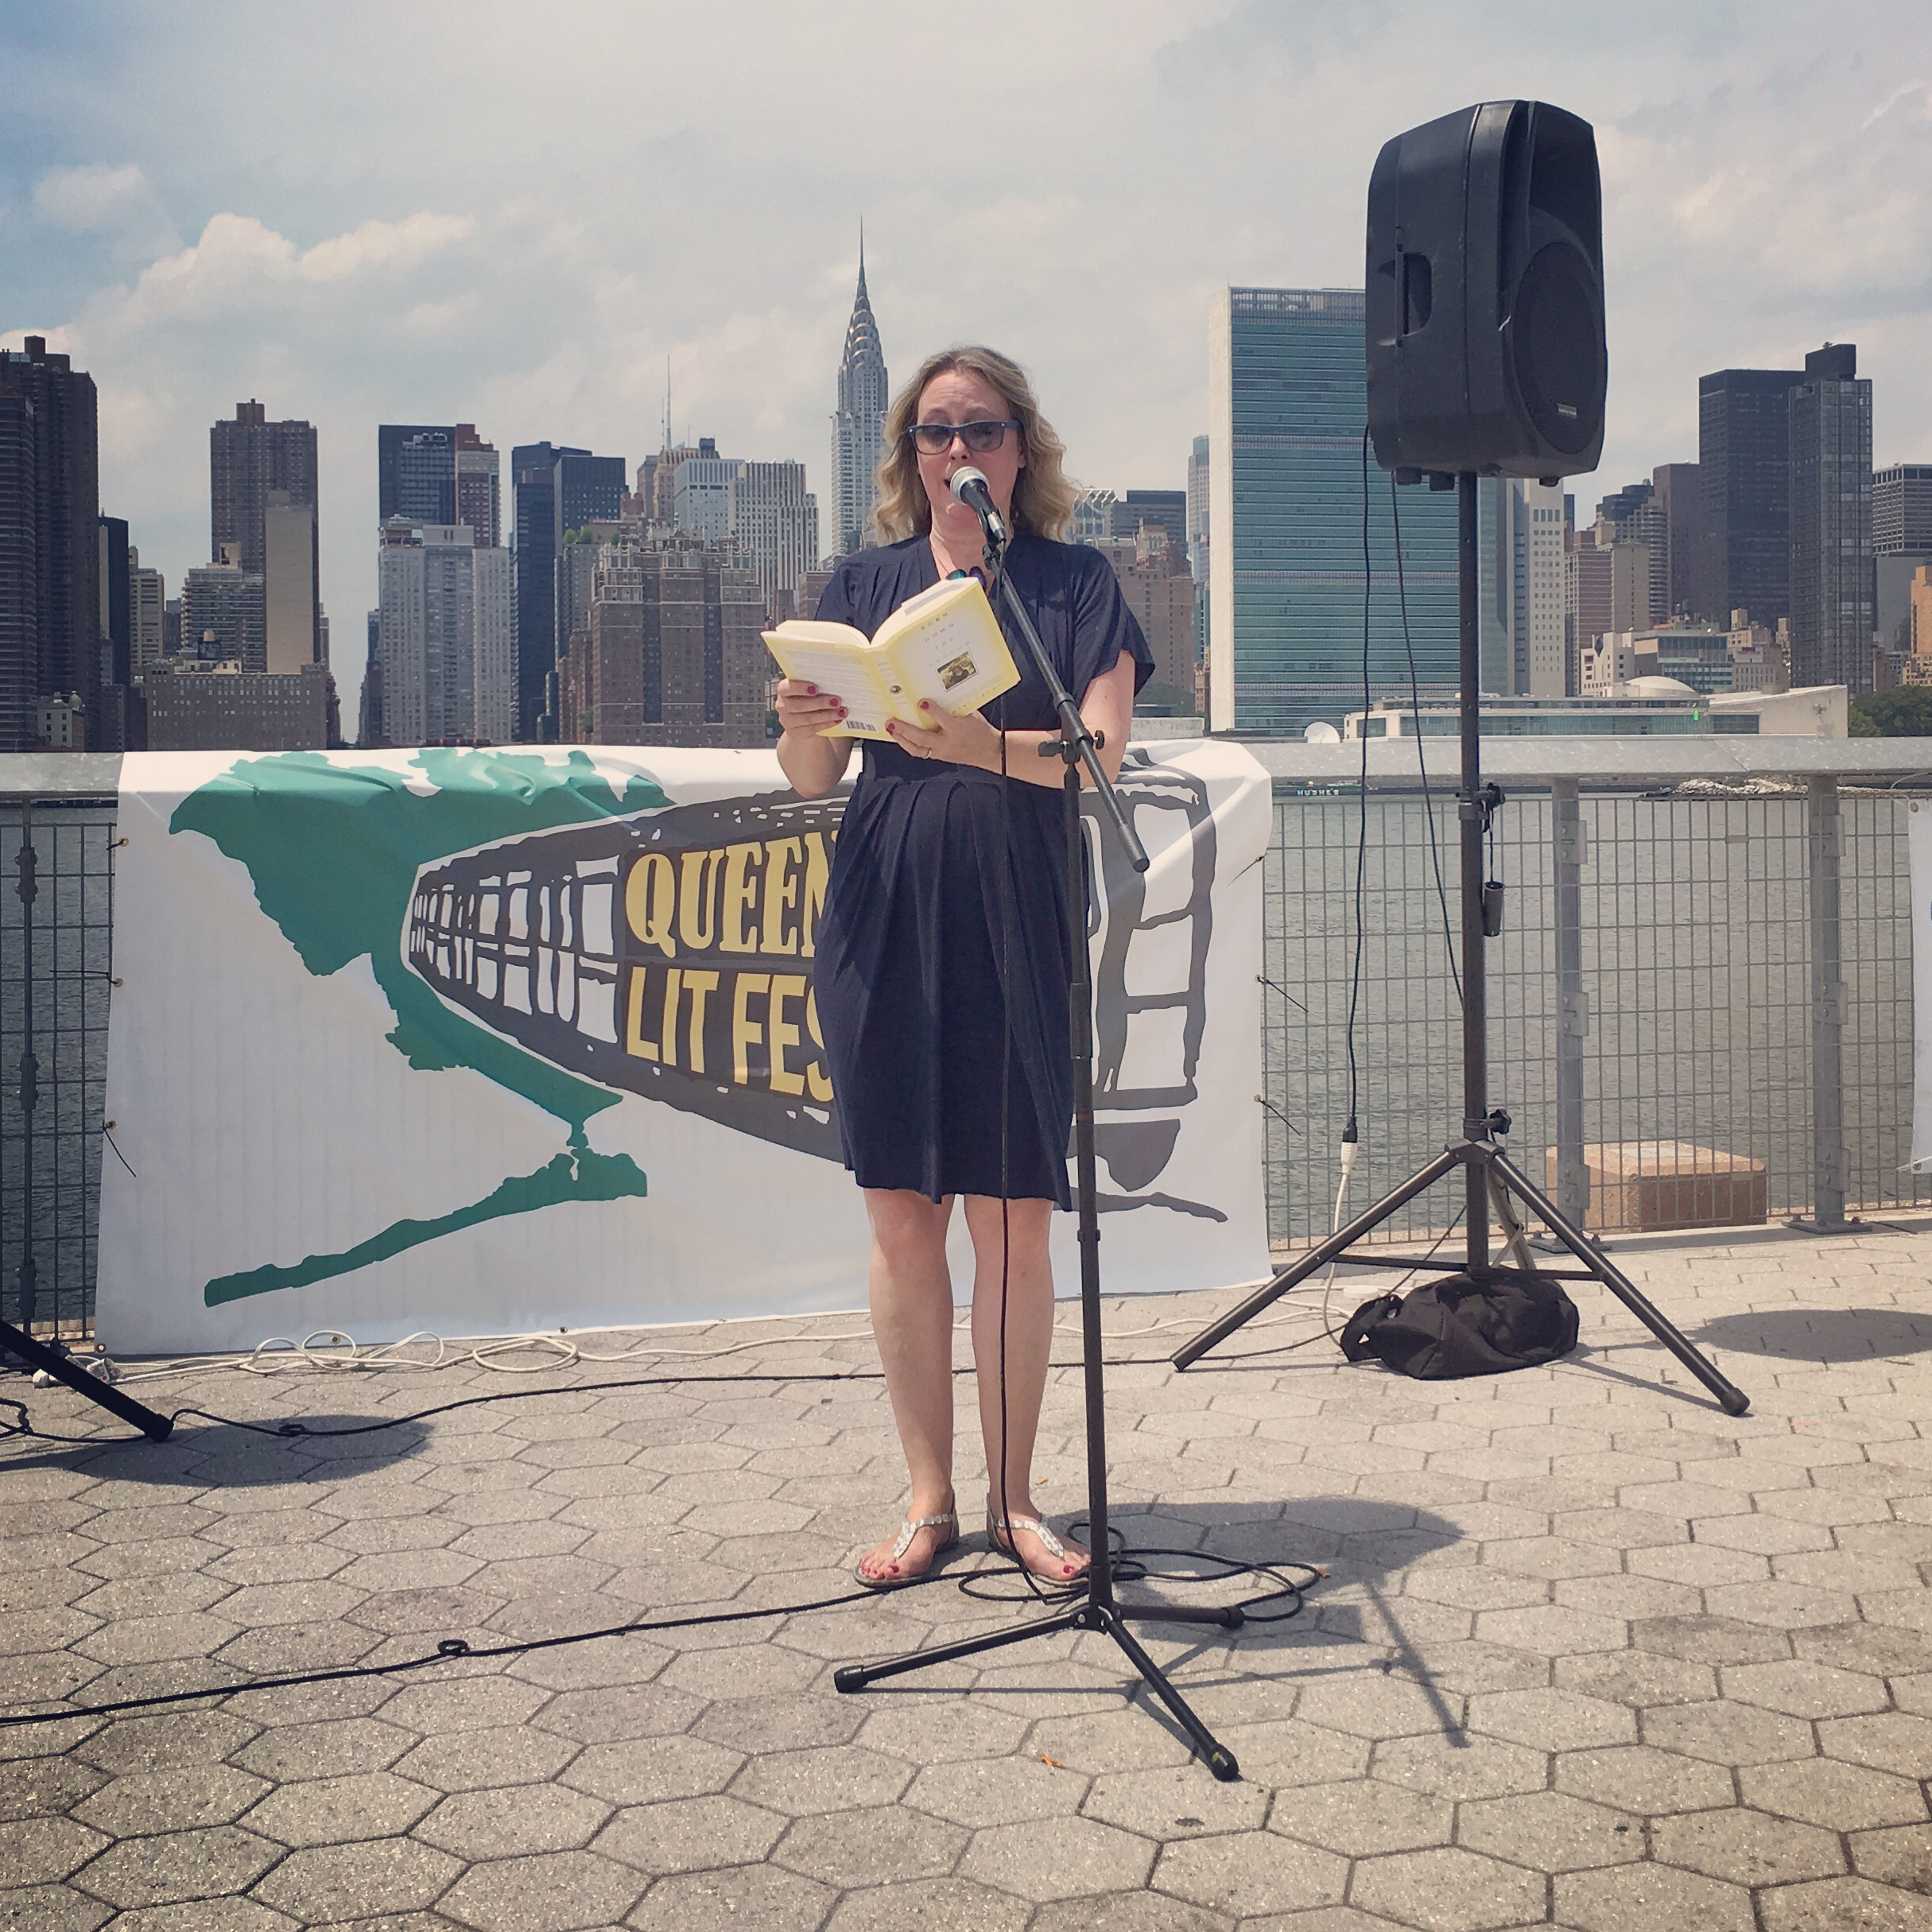 Kambri Crews reads for Line Break at the Queens Lit Fest, LIC Landing, Long Island City, NY, July 16, 2016